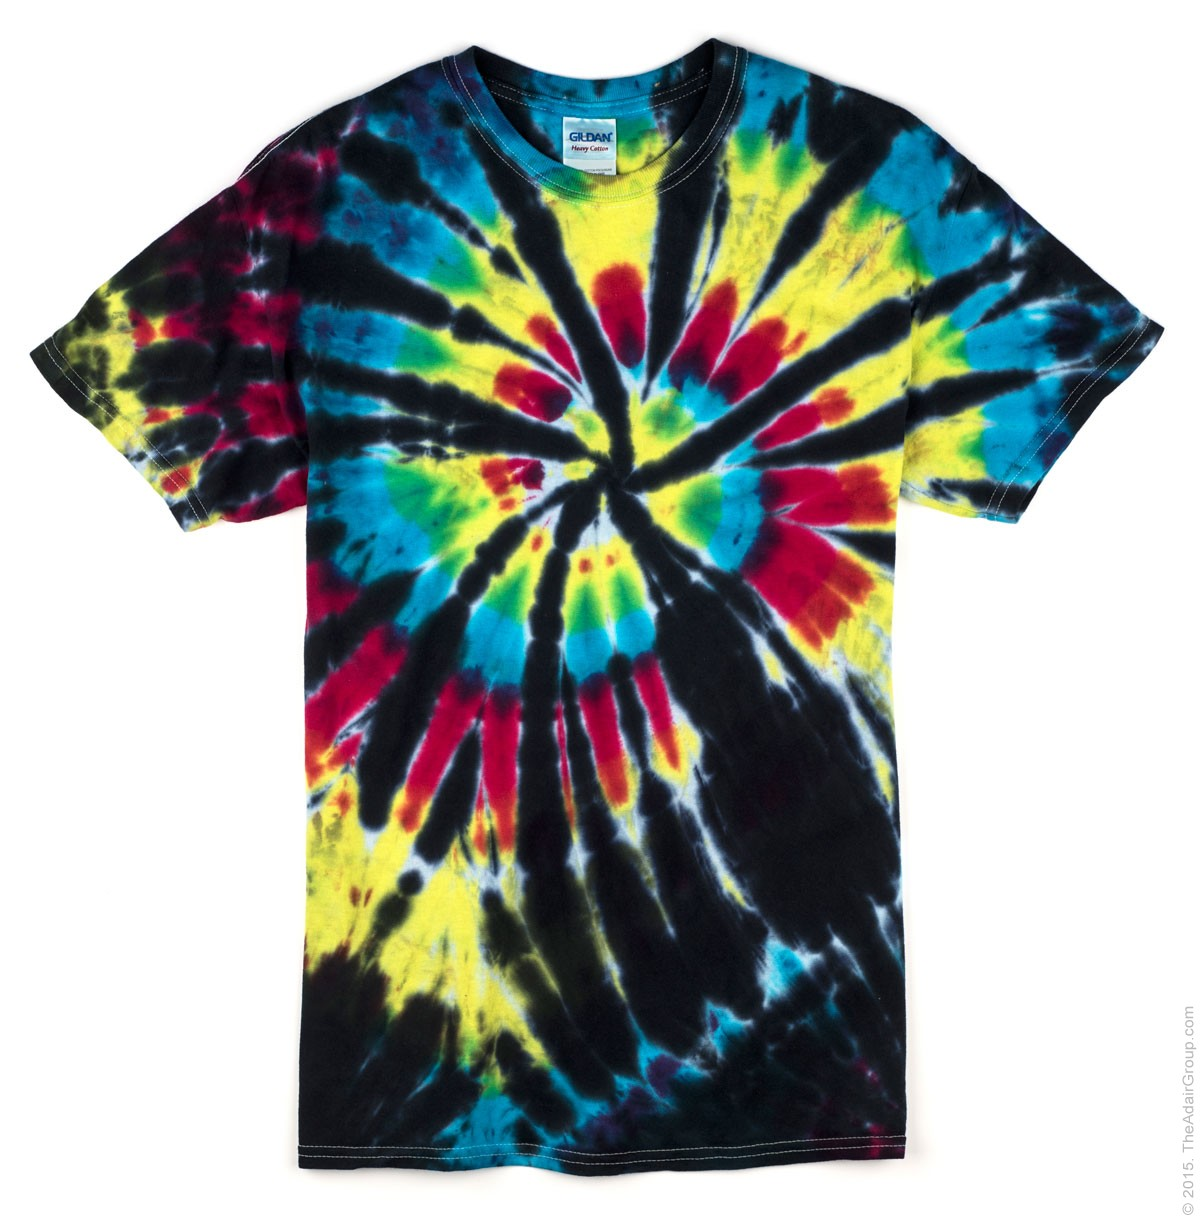 Black Rainbow Adult Tie Dye T Shirt The Adair Group